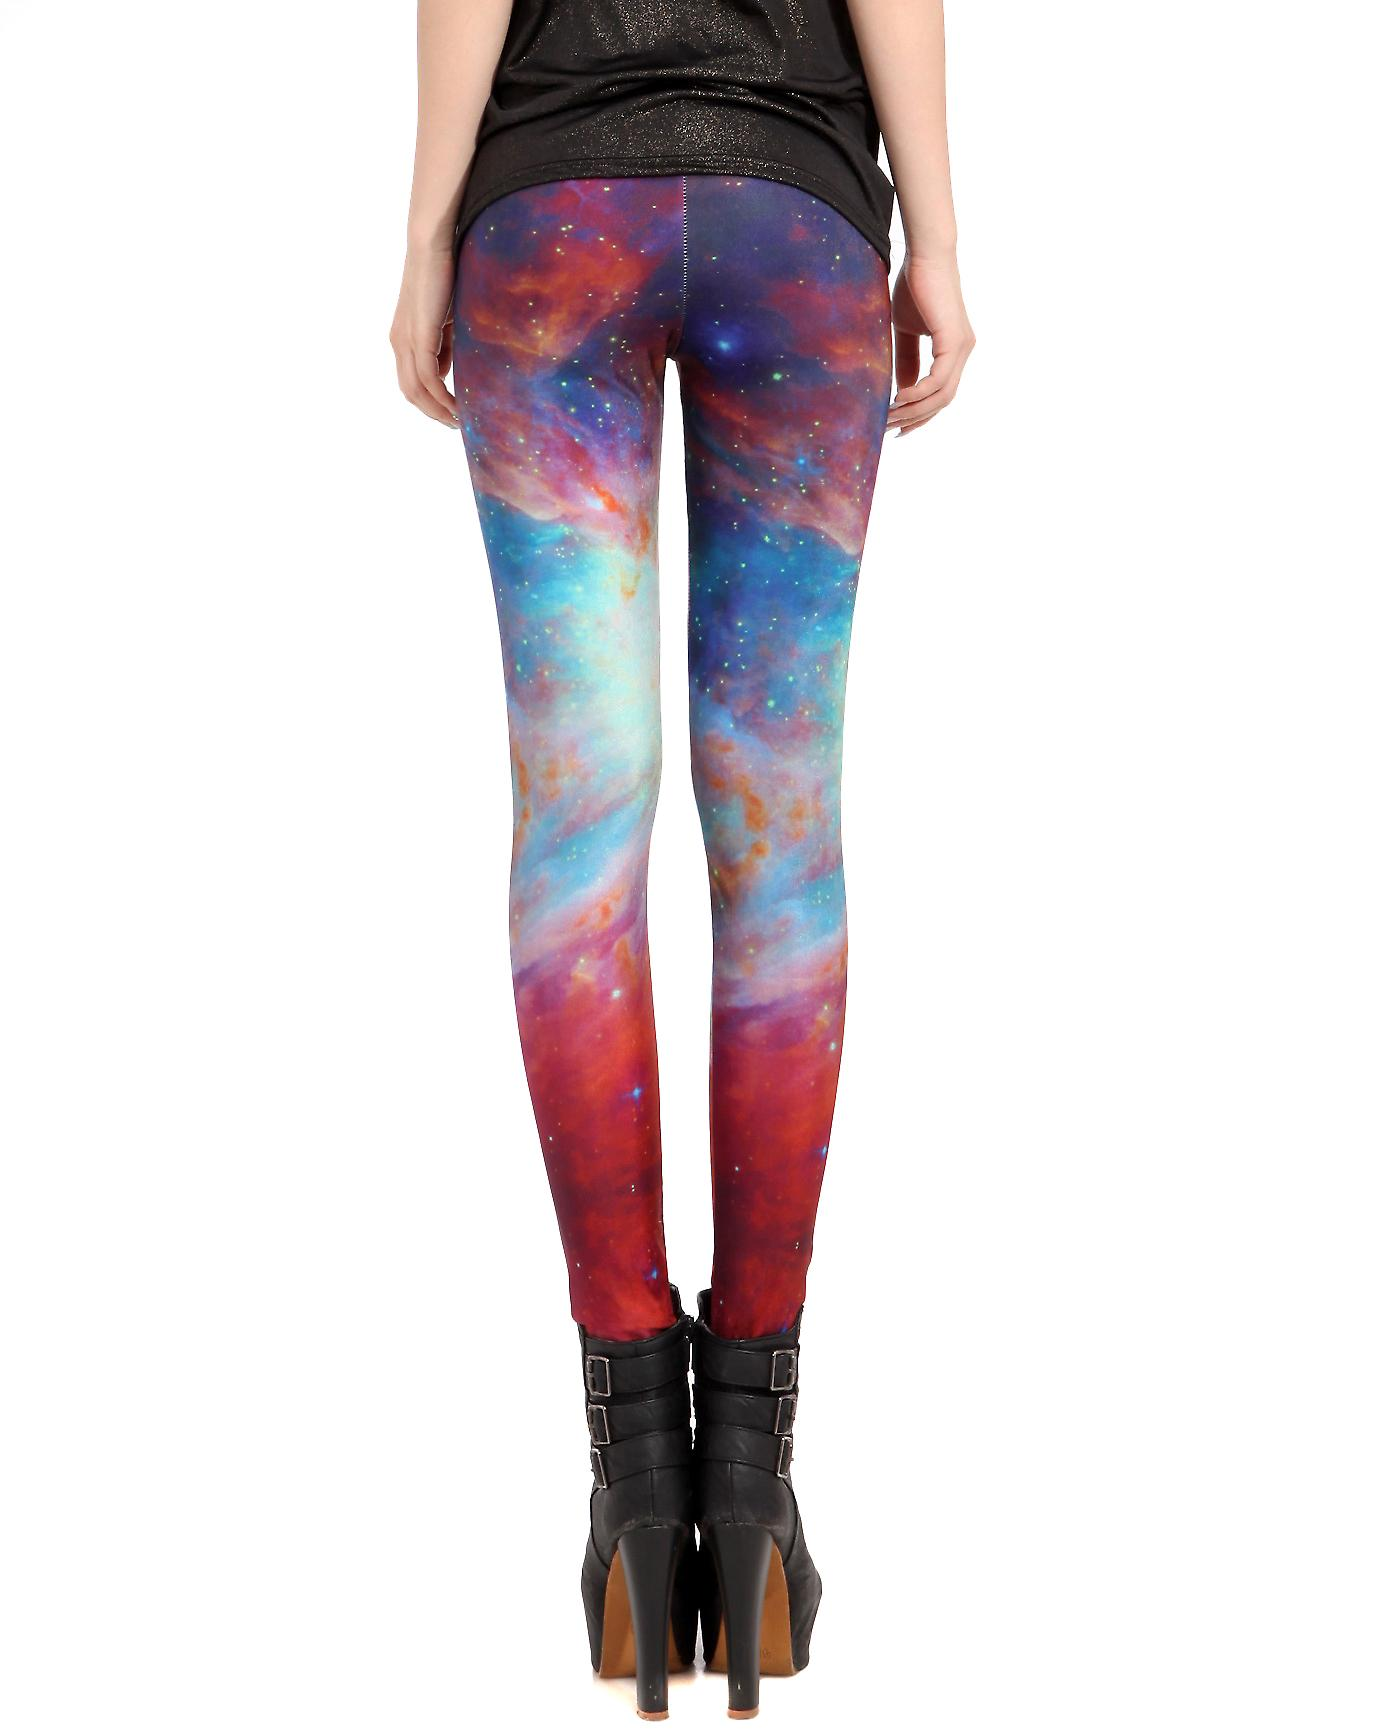 Waooh - Fashion - Leggings long fancy - multi Galaxie